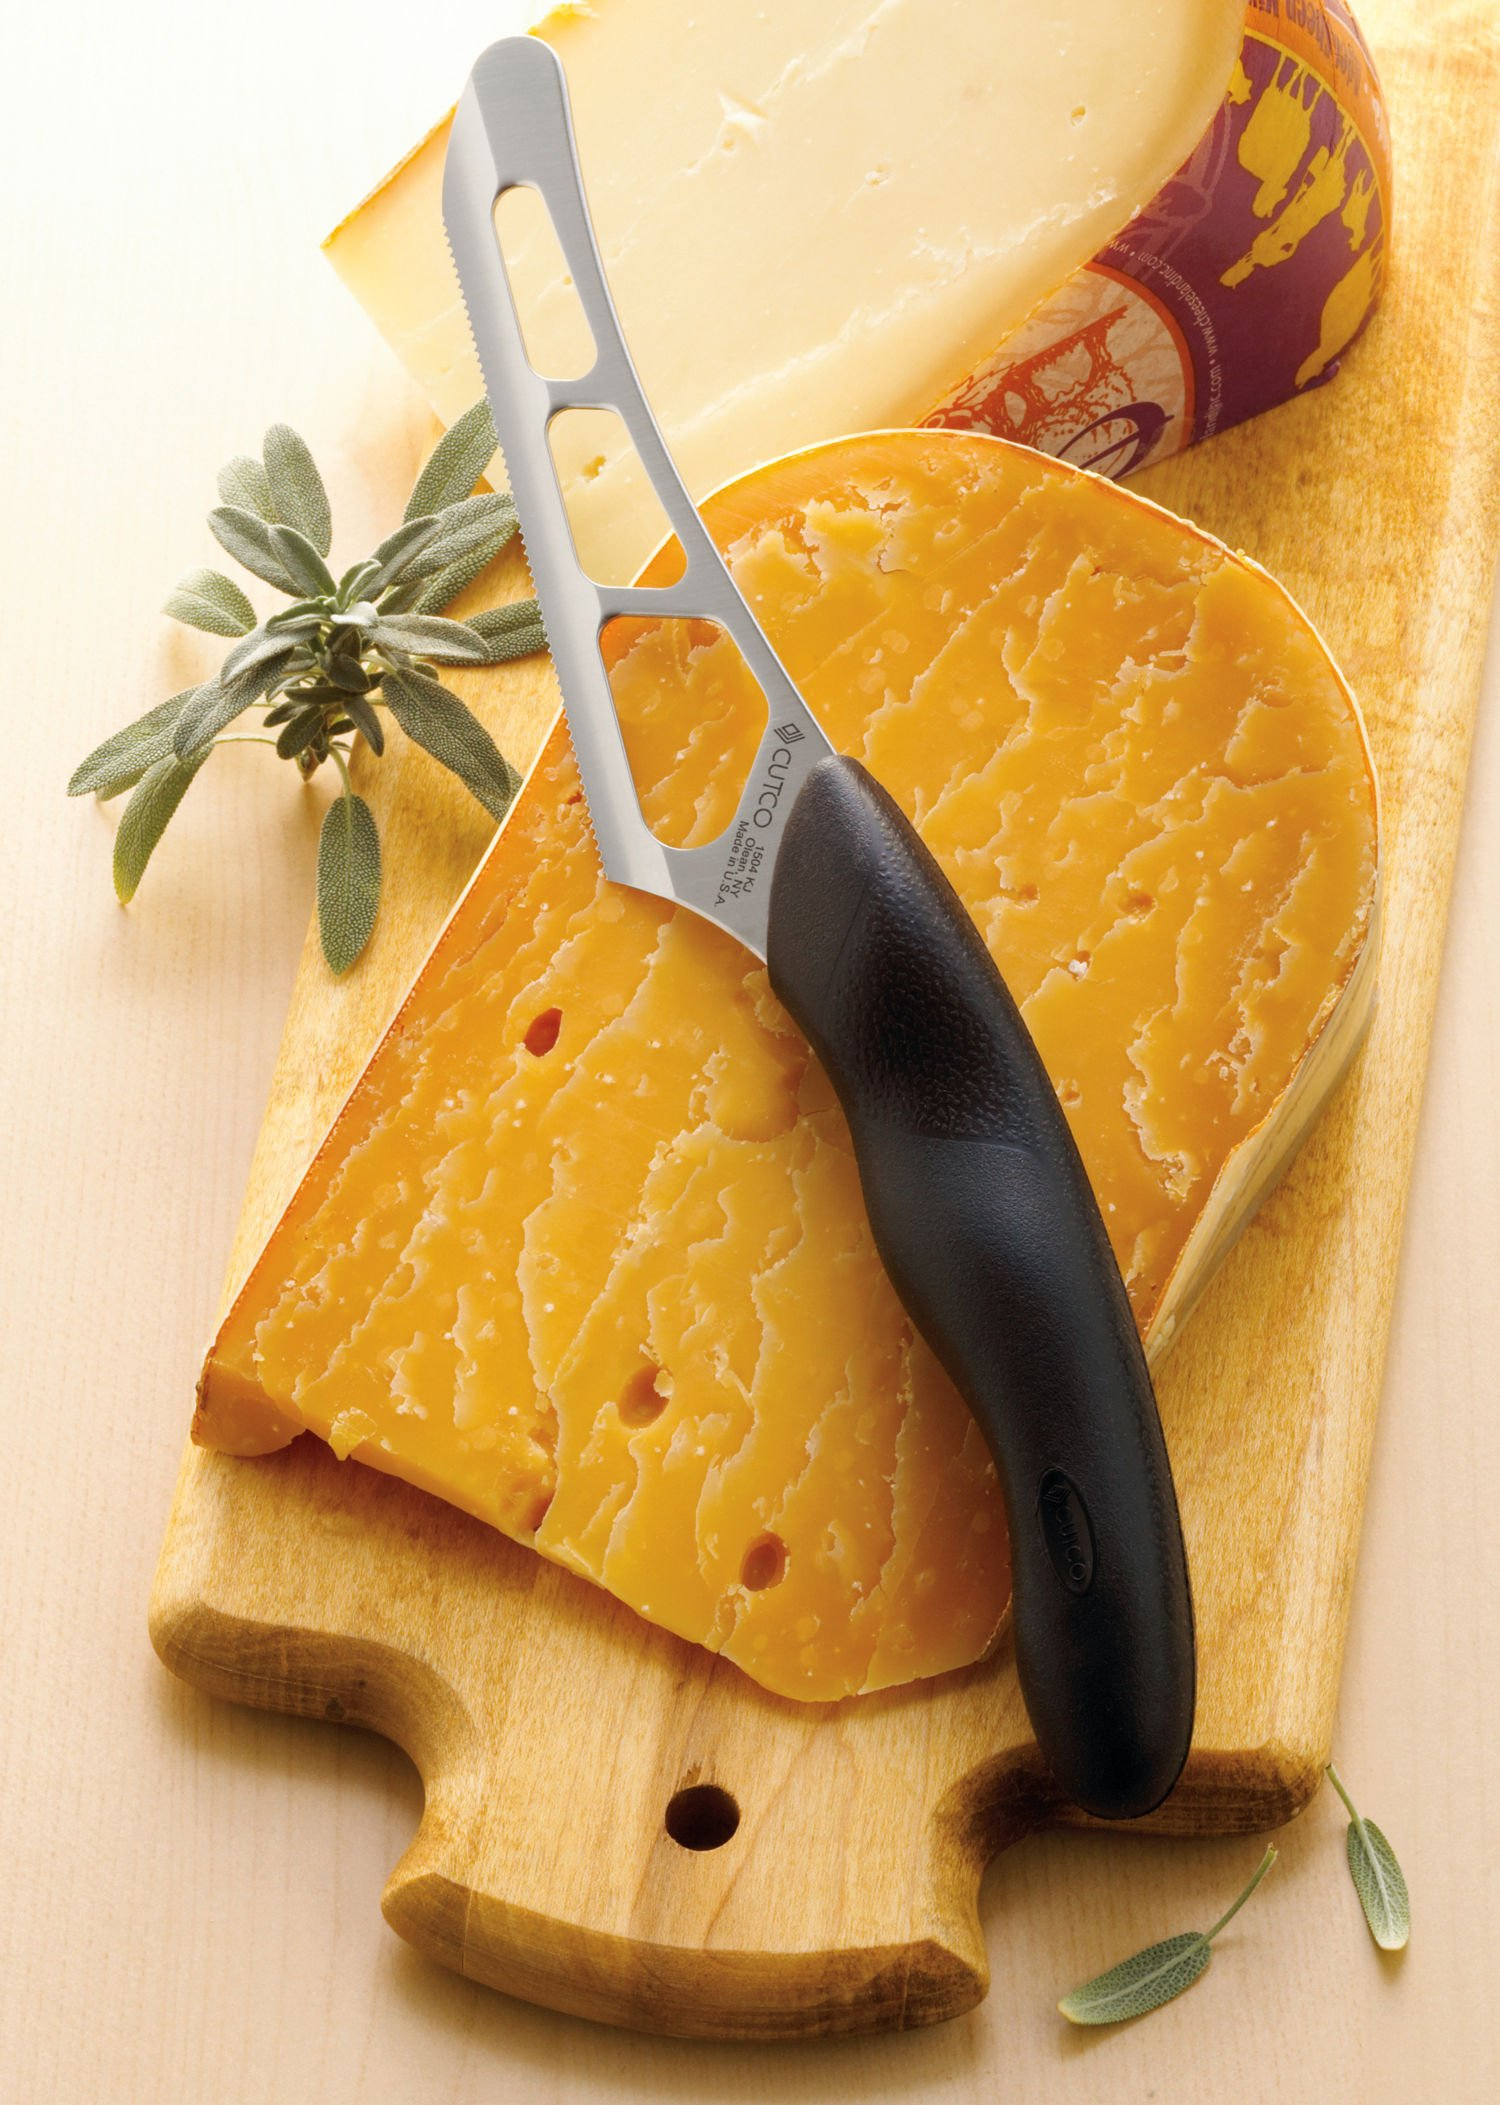 CUTCO Model 1504 soft handle Cheese Knife --- 5.5'' stainless blade & 5'' black handle.